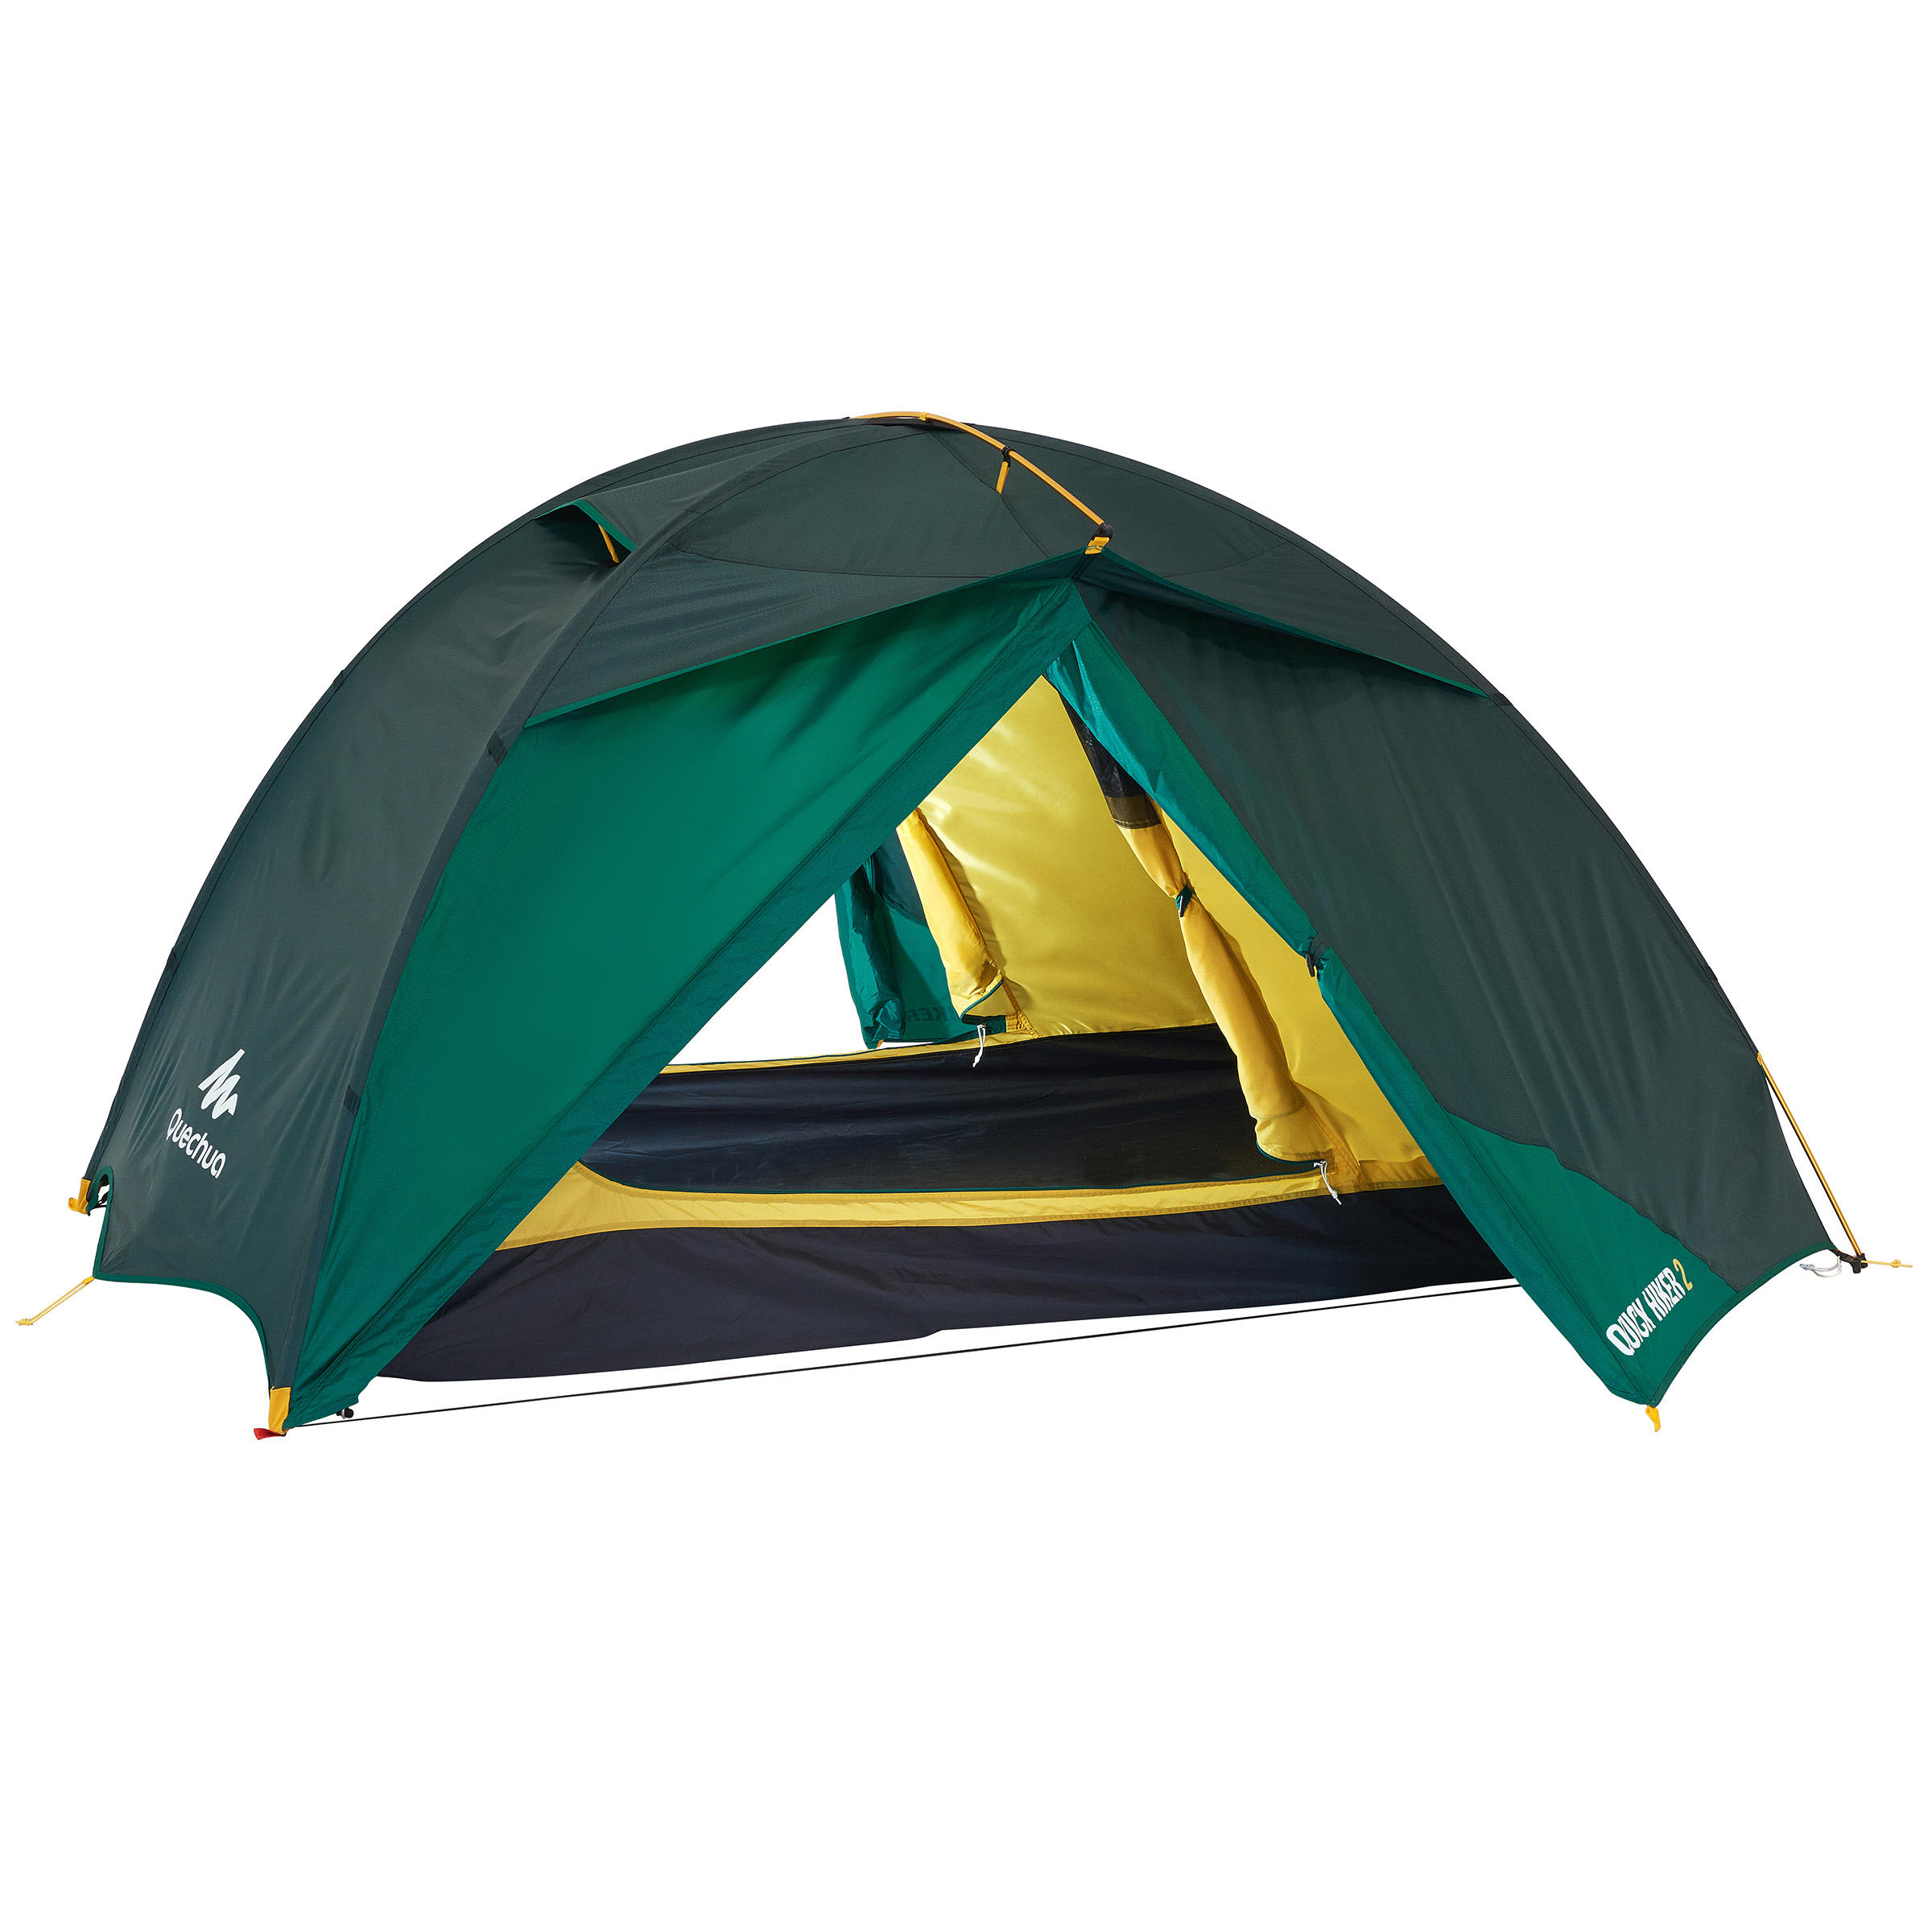 Quick Hiker Bivouac/Trekking/Hiking Tent - 2-Man Green - 1099160  sc 1 th 225 : bivouac tents - memphite.com